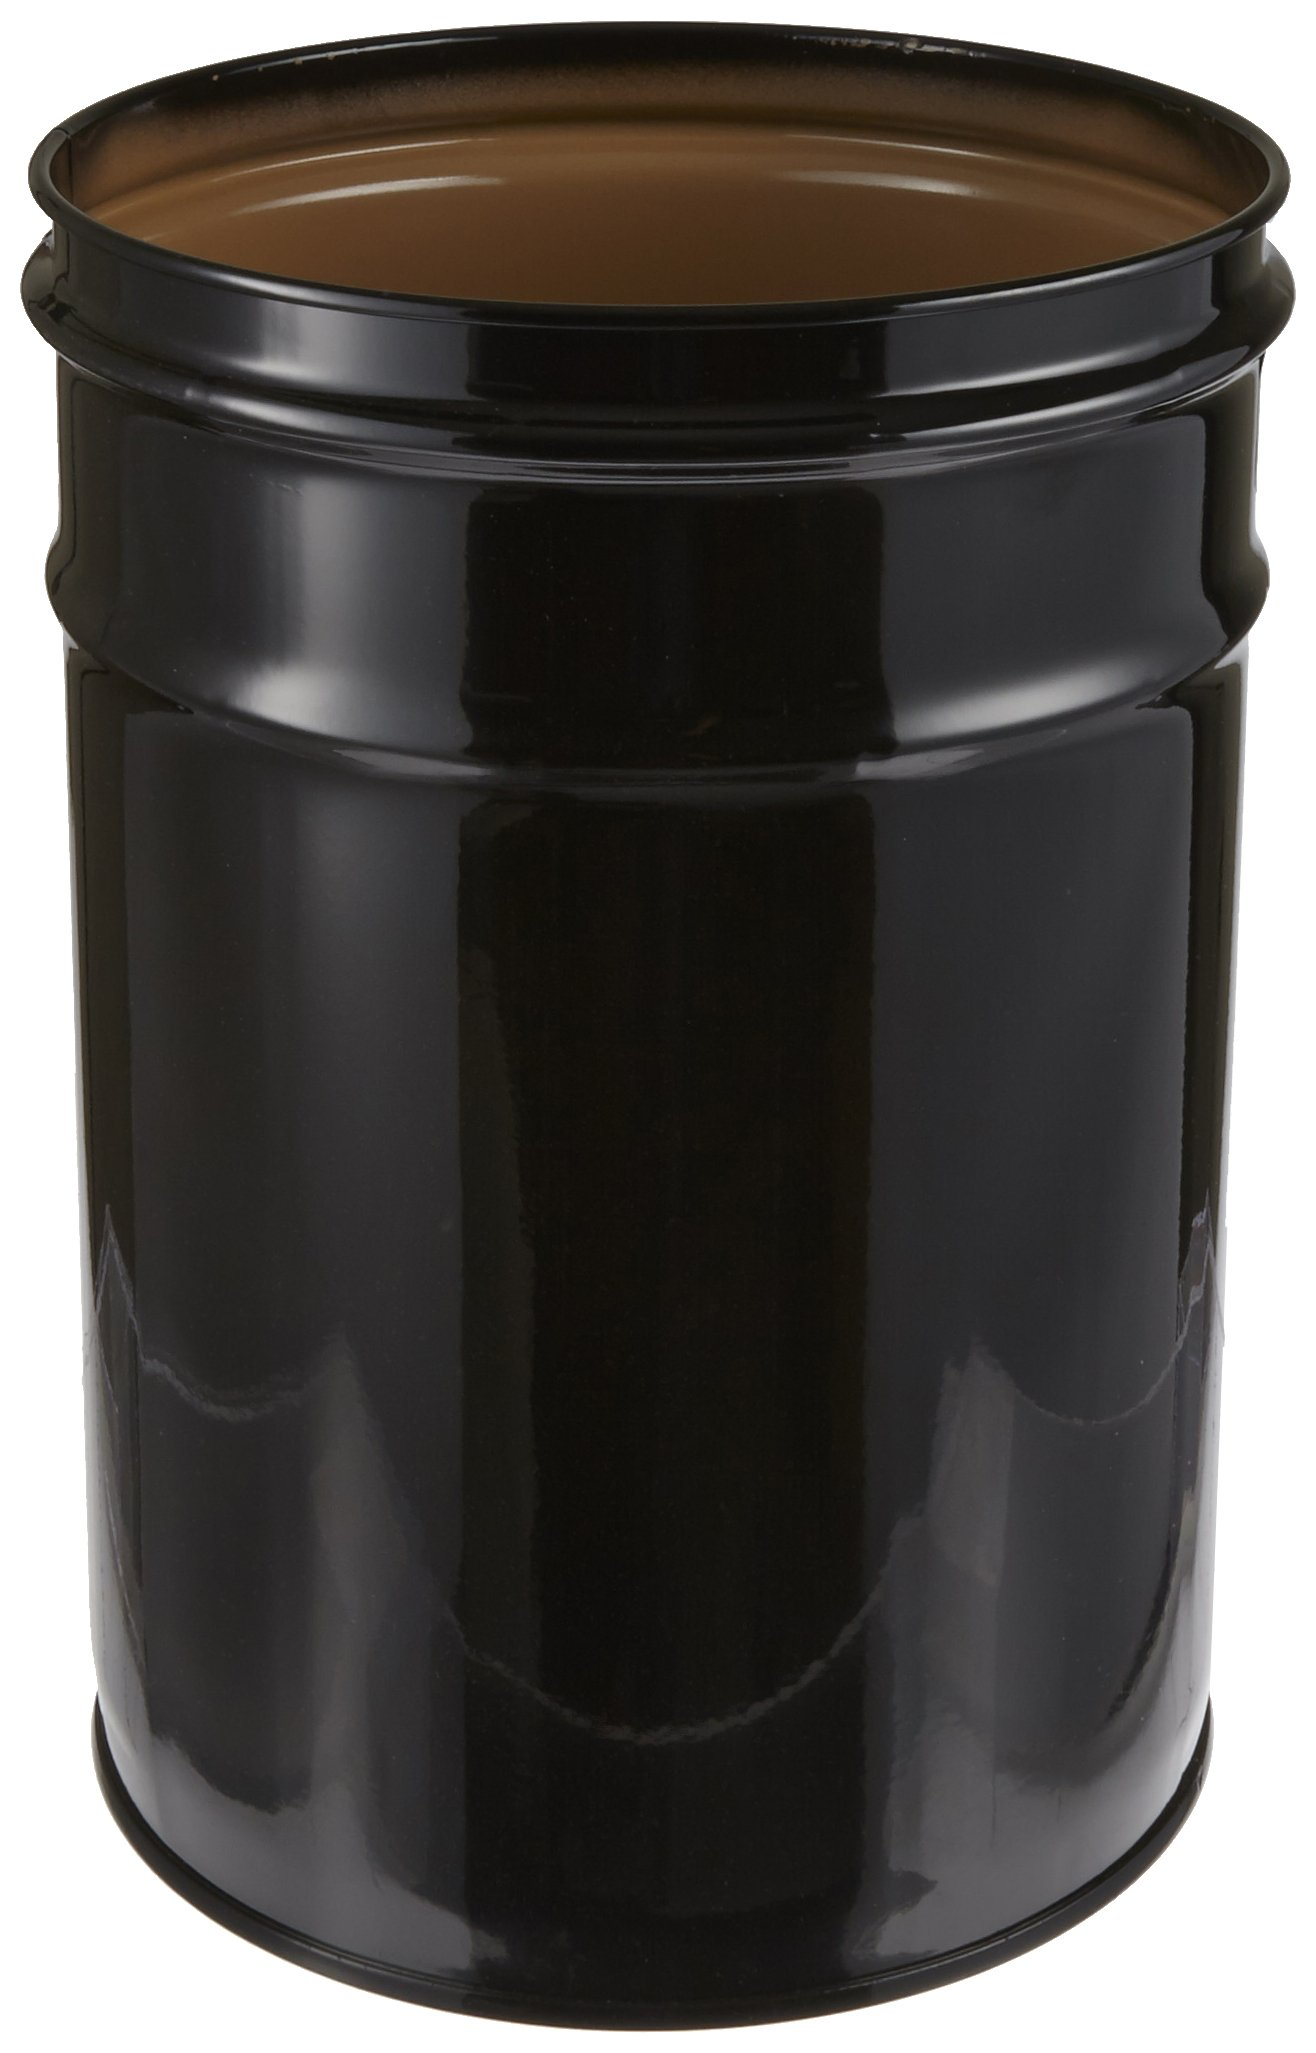 Justrite 26050K Cease-Fire Steel Drum, 6 Gallon Capacity, 11-3/4'' OD x 15-3/4'' Height, Black